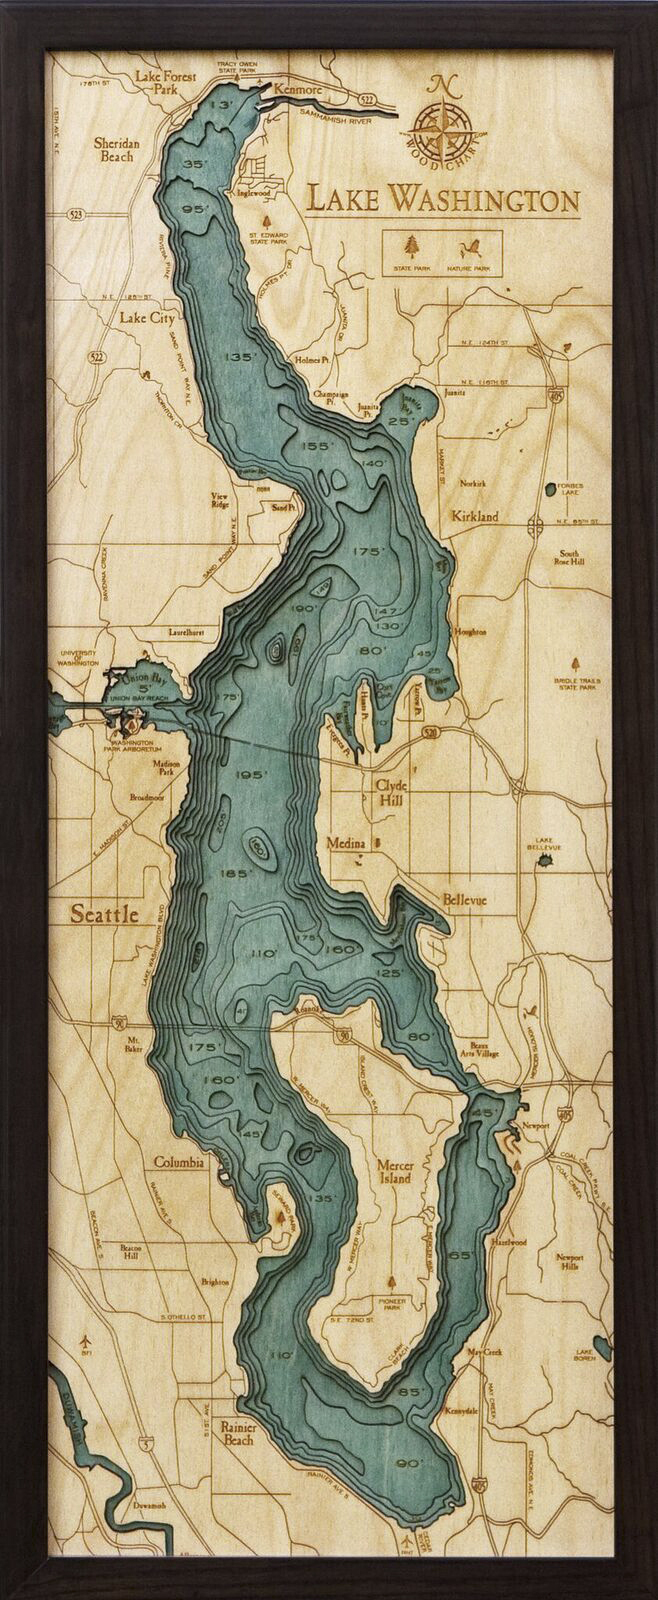 Bathymetric Map Lake Washington, Washington